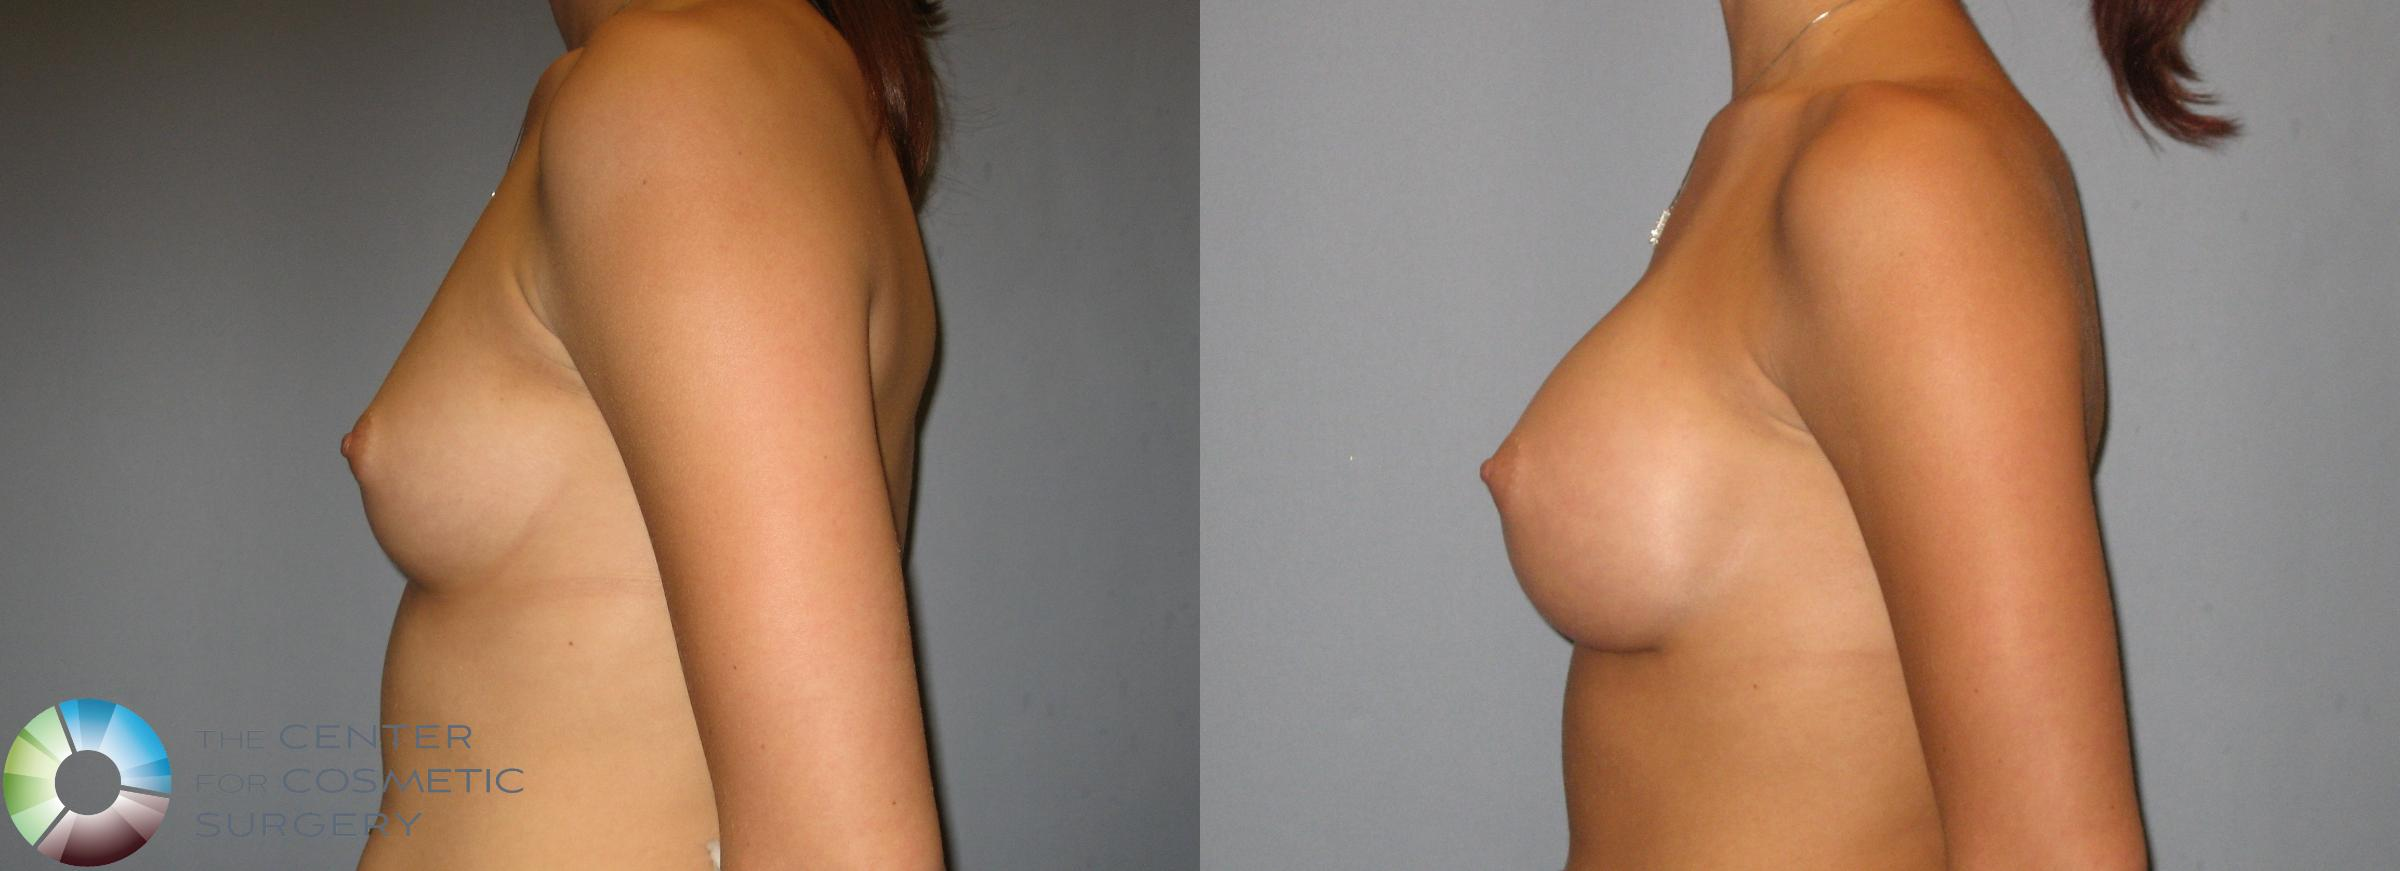 Breast Augmentation Case 275 Before & After View #3 | Golden, CO | The Center for Cosmetic Surgery